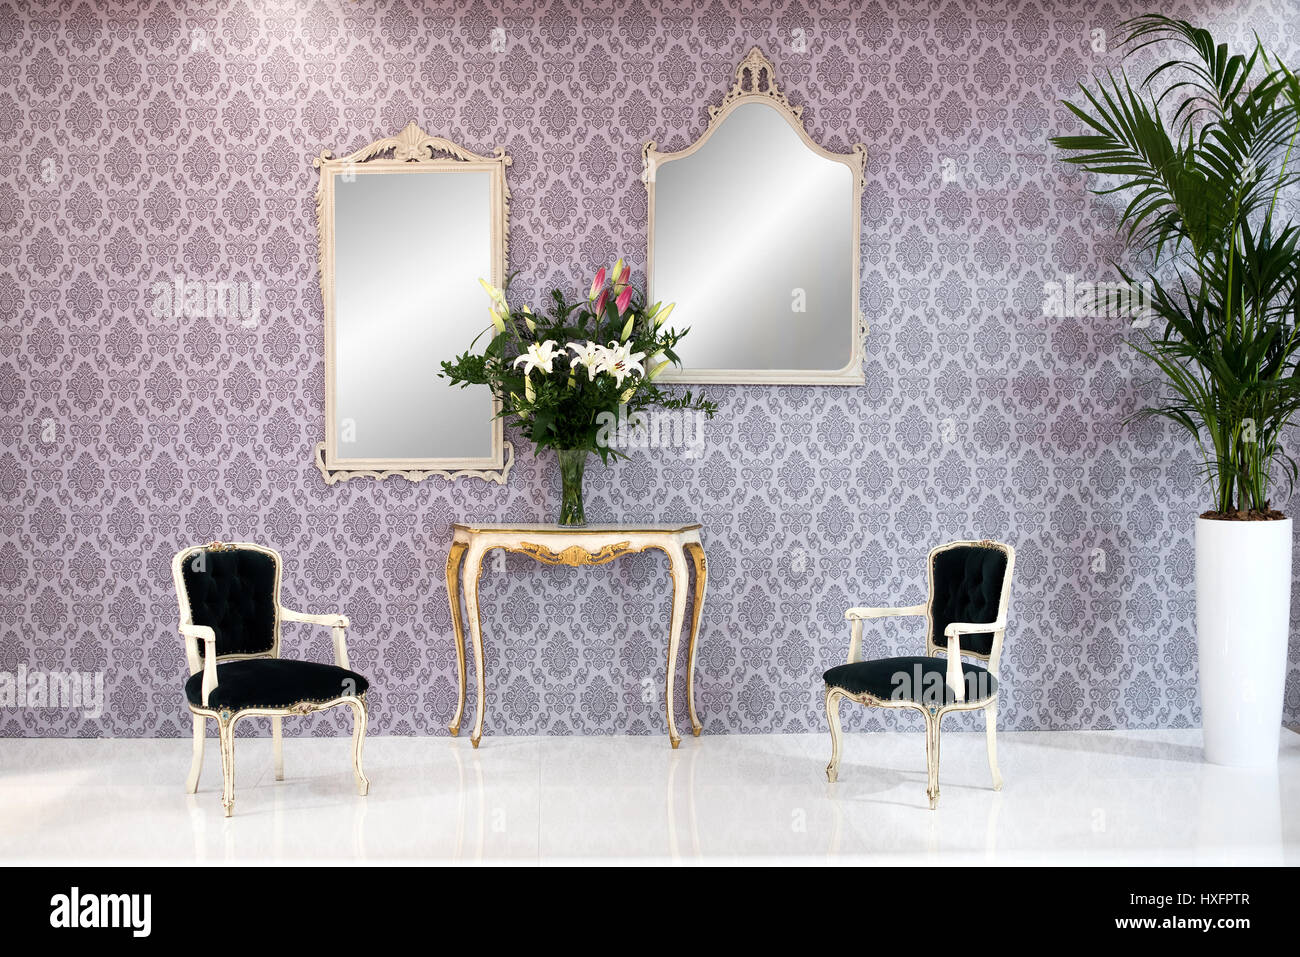 Elegant Vintage Style Living Room Interior With Patterned Arabesque  Wallpaper, Two Armchairs, Mirrors, A Large Potted Houseplant And A Console  Table W